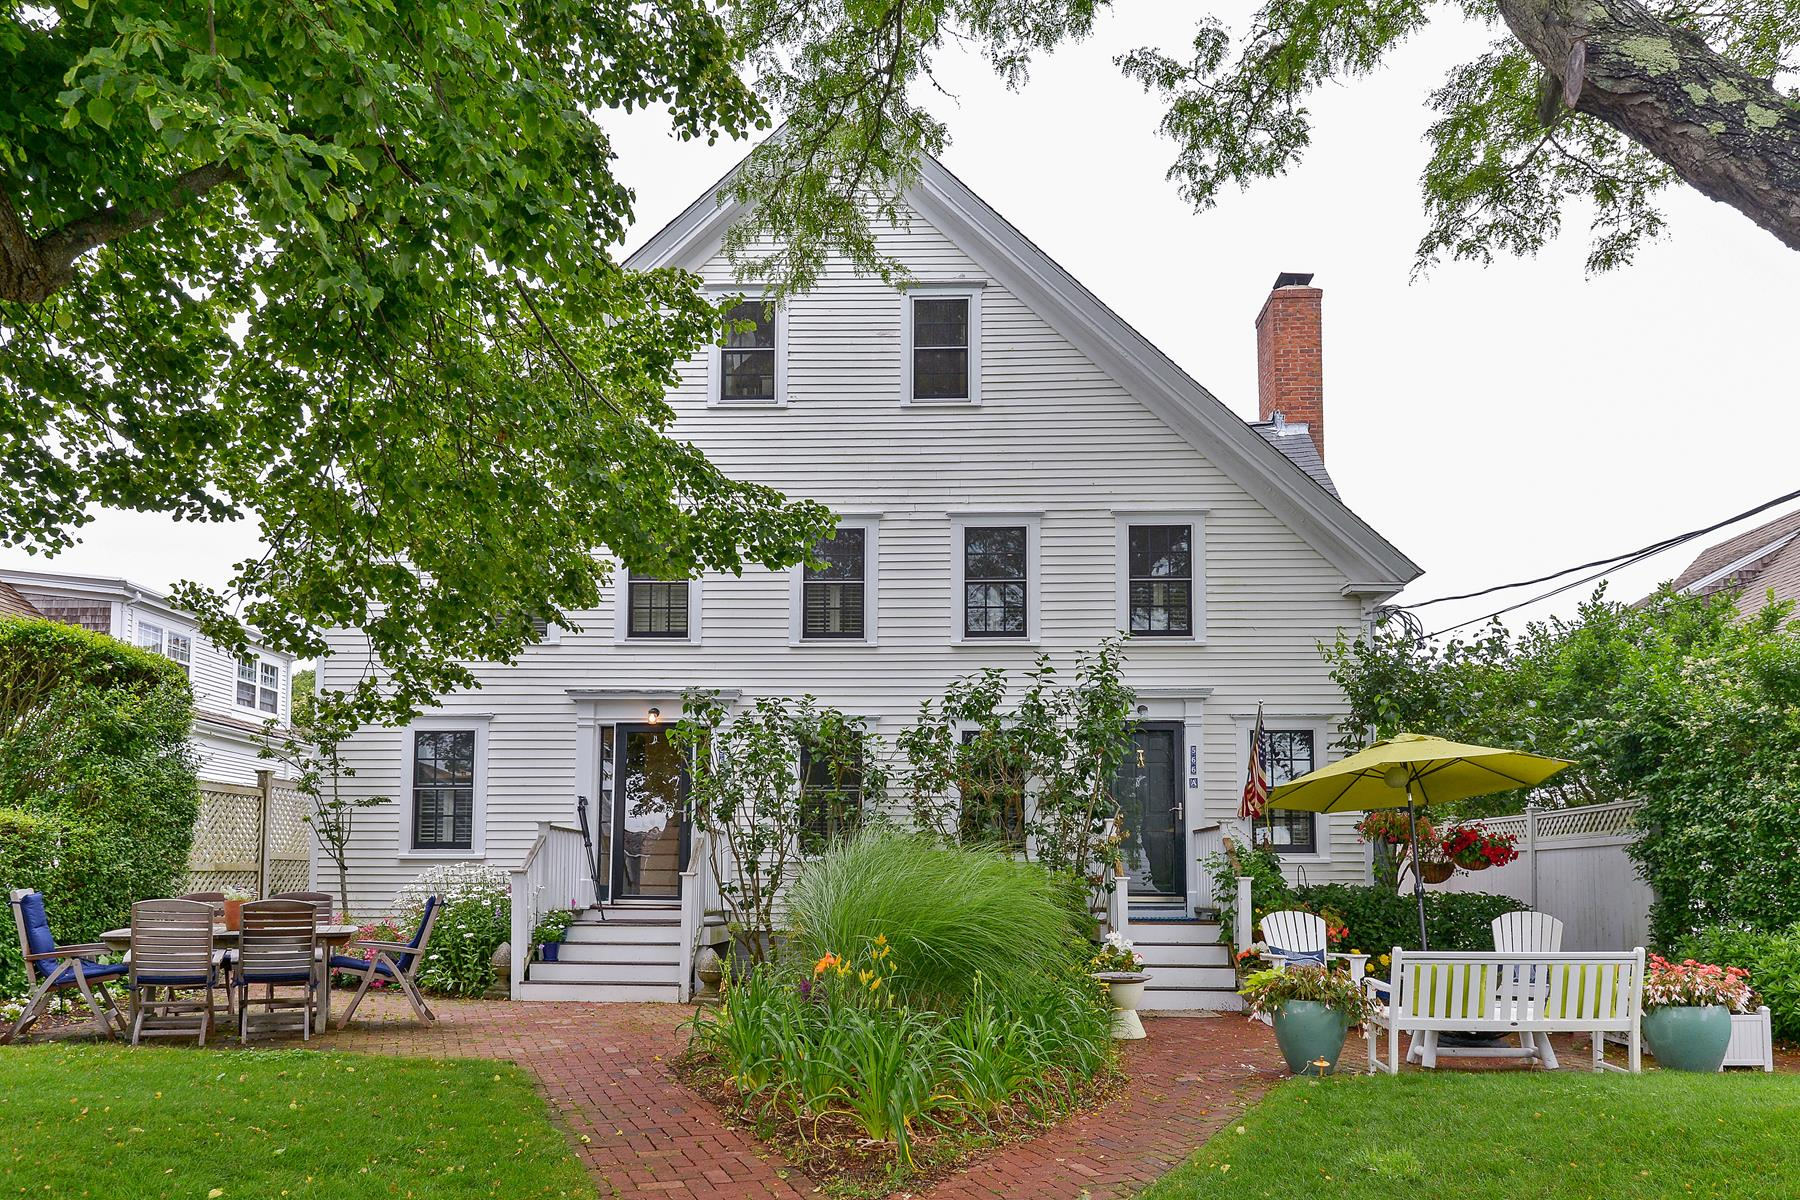 Condominium for Sale at The Windamar House 566 Commercial Street, Unit C Provincetown, Massachusetts 02657 United States